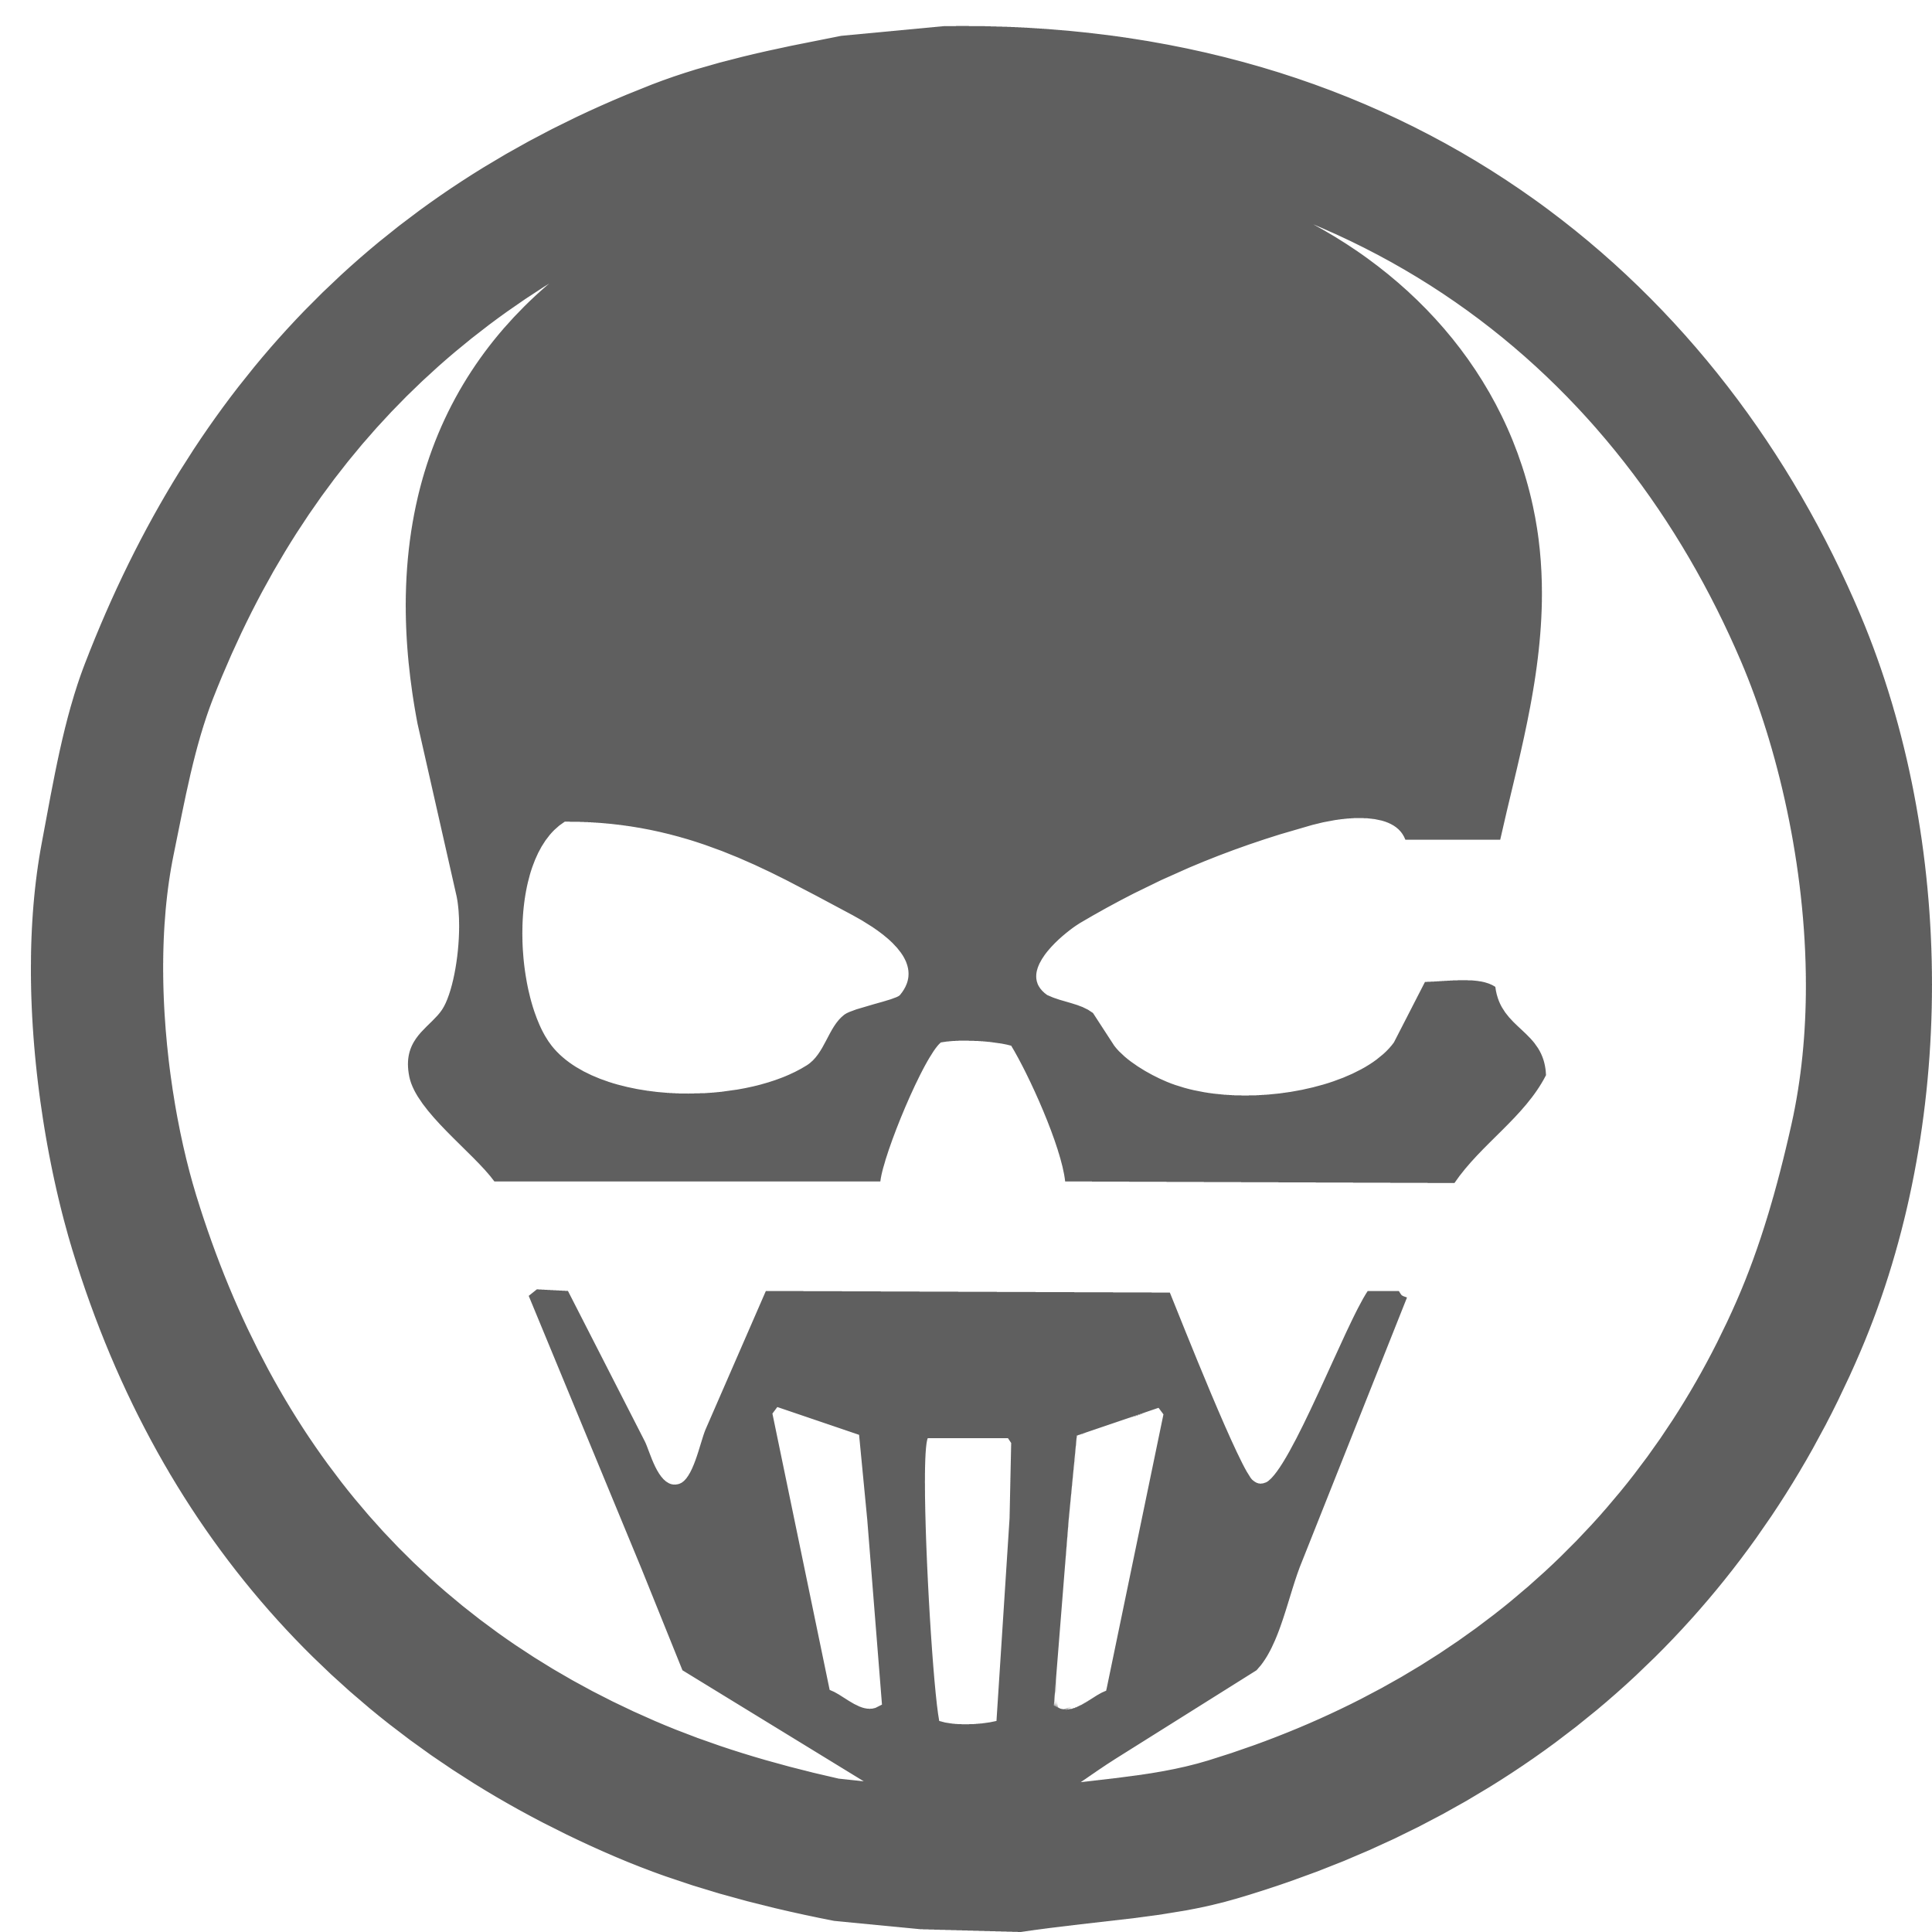 Https Clubapk Com Ghost Recon Network Apk It Is Possible To Learn More Over At Ghostrecon Net From These Real Events Ghost Ghost Future Soldier Networking